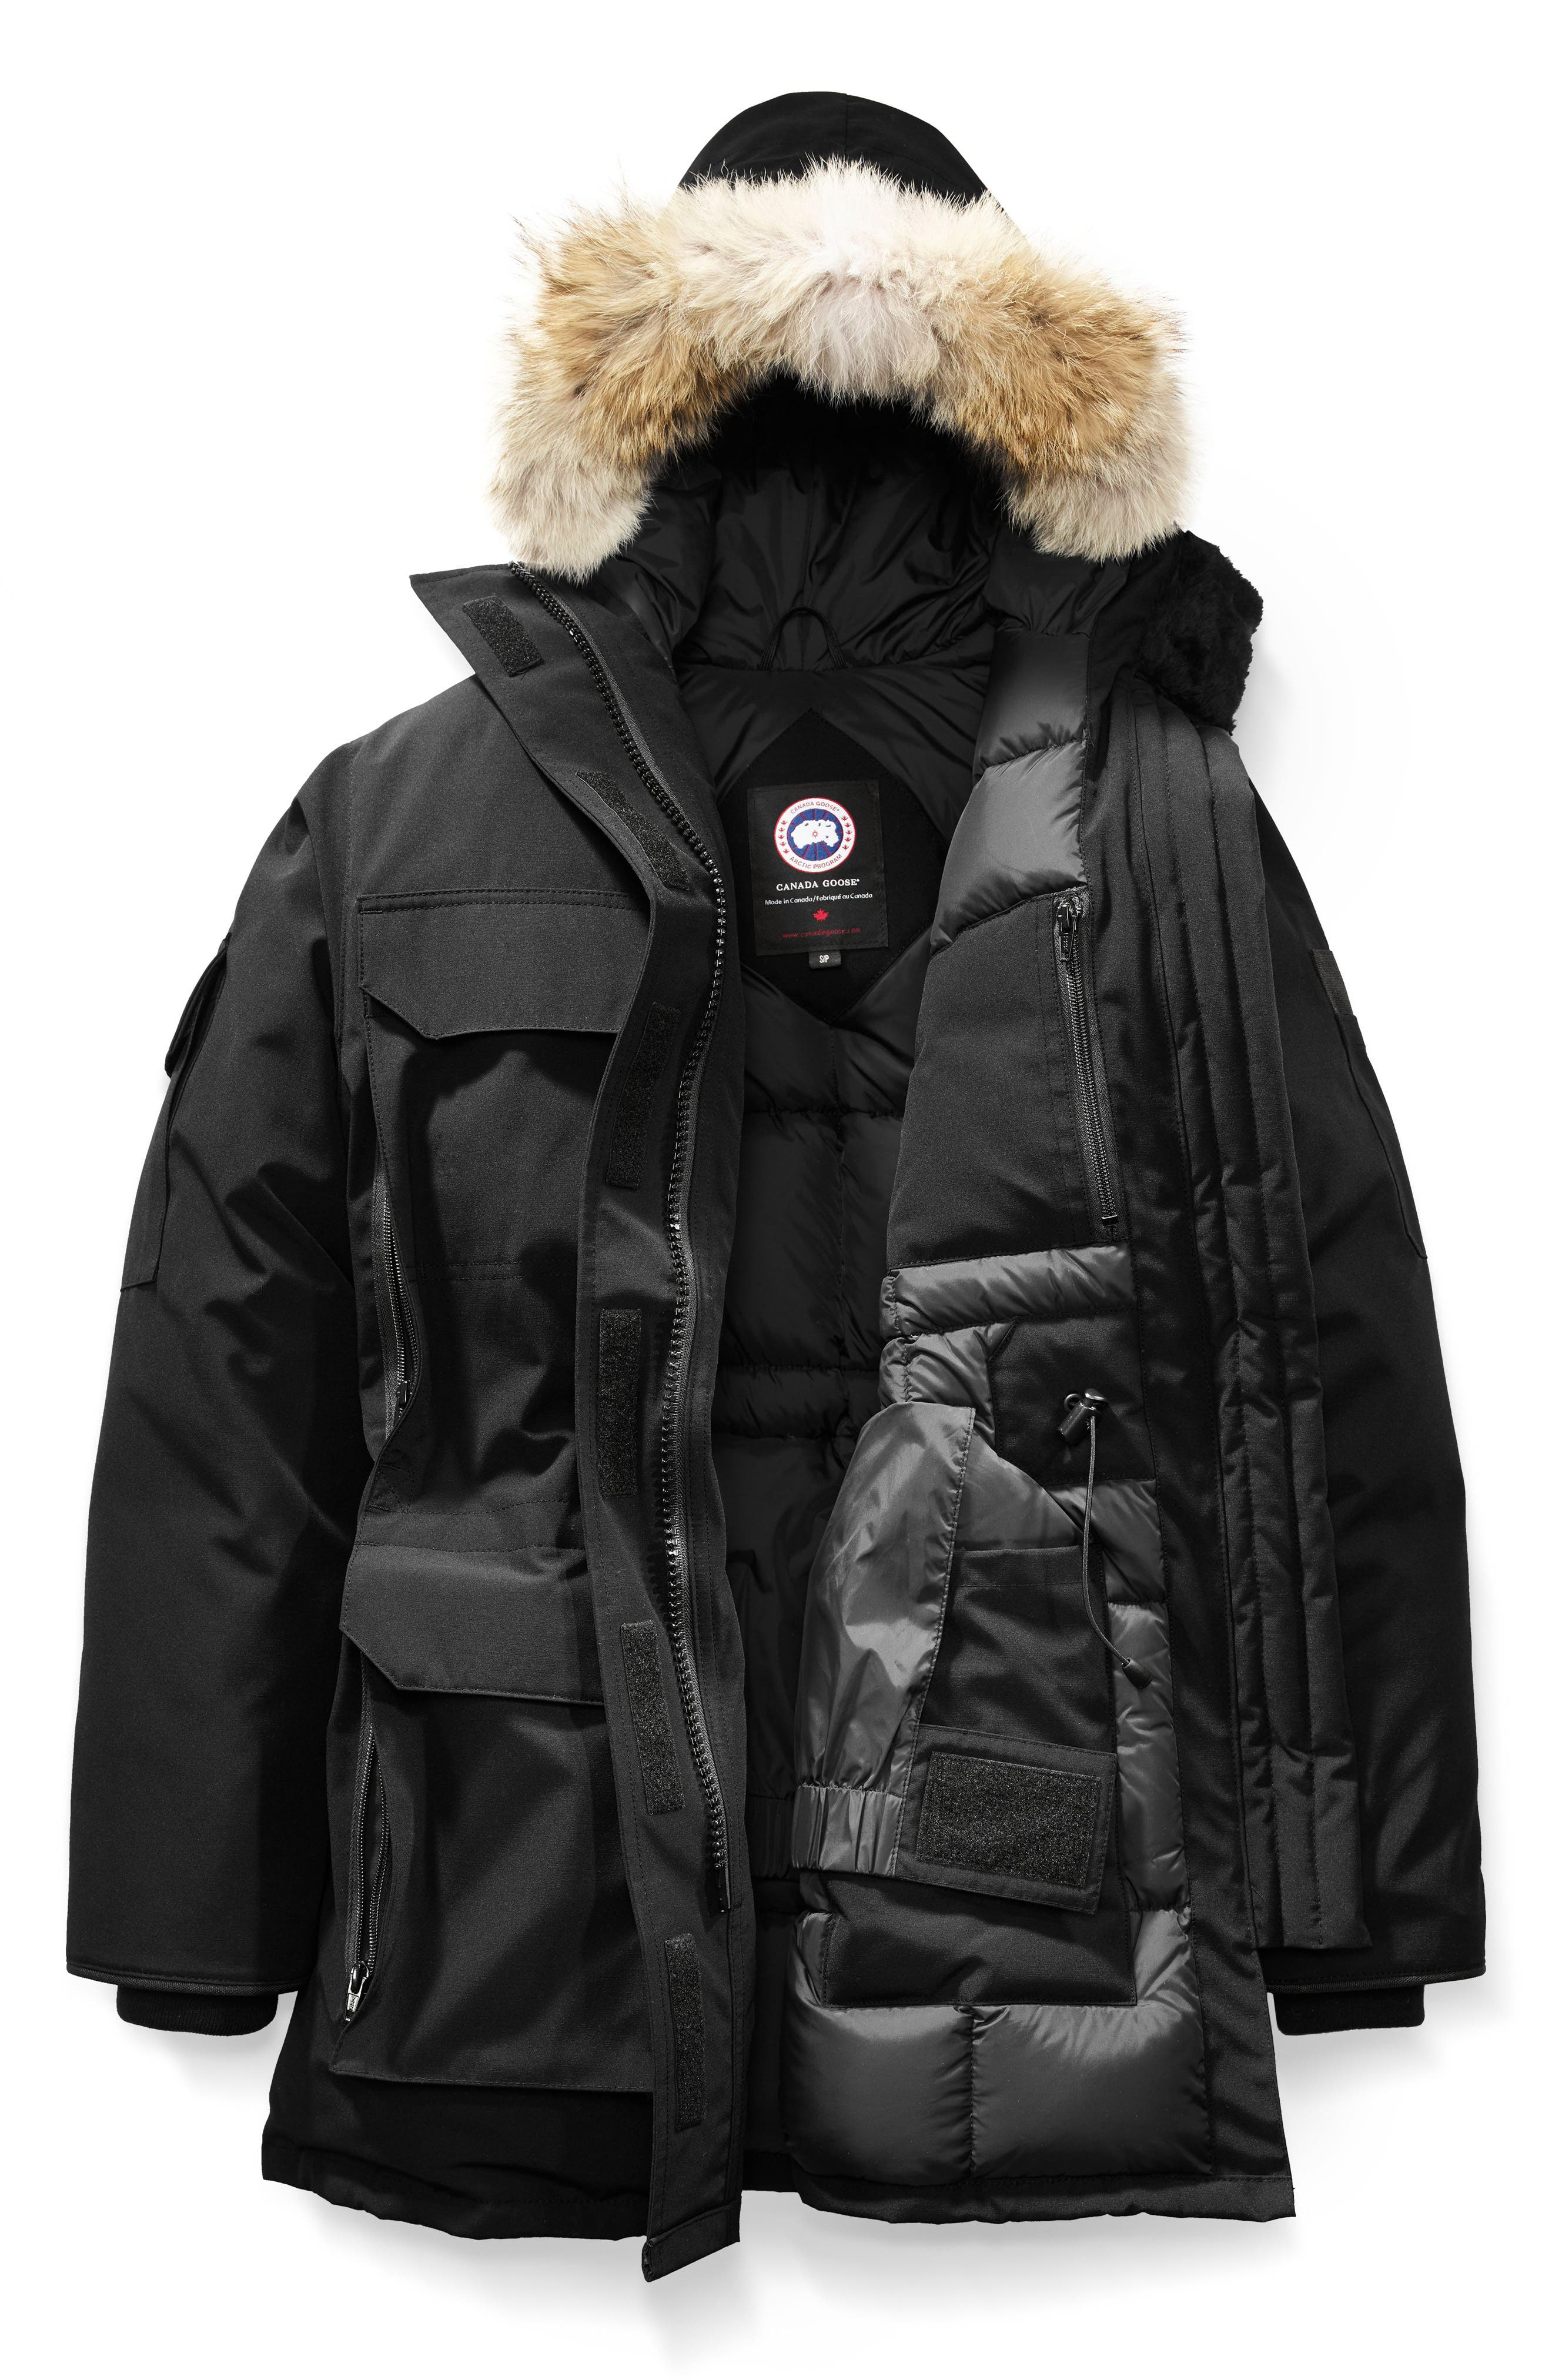 Expedition Hooded Down Parka with Genuine Coyote Fur Trim,                             Alternate thumbnail 4, color,                             001